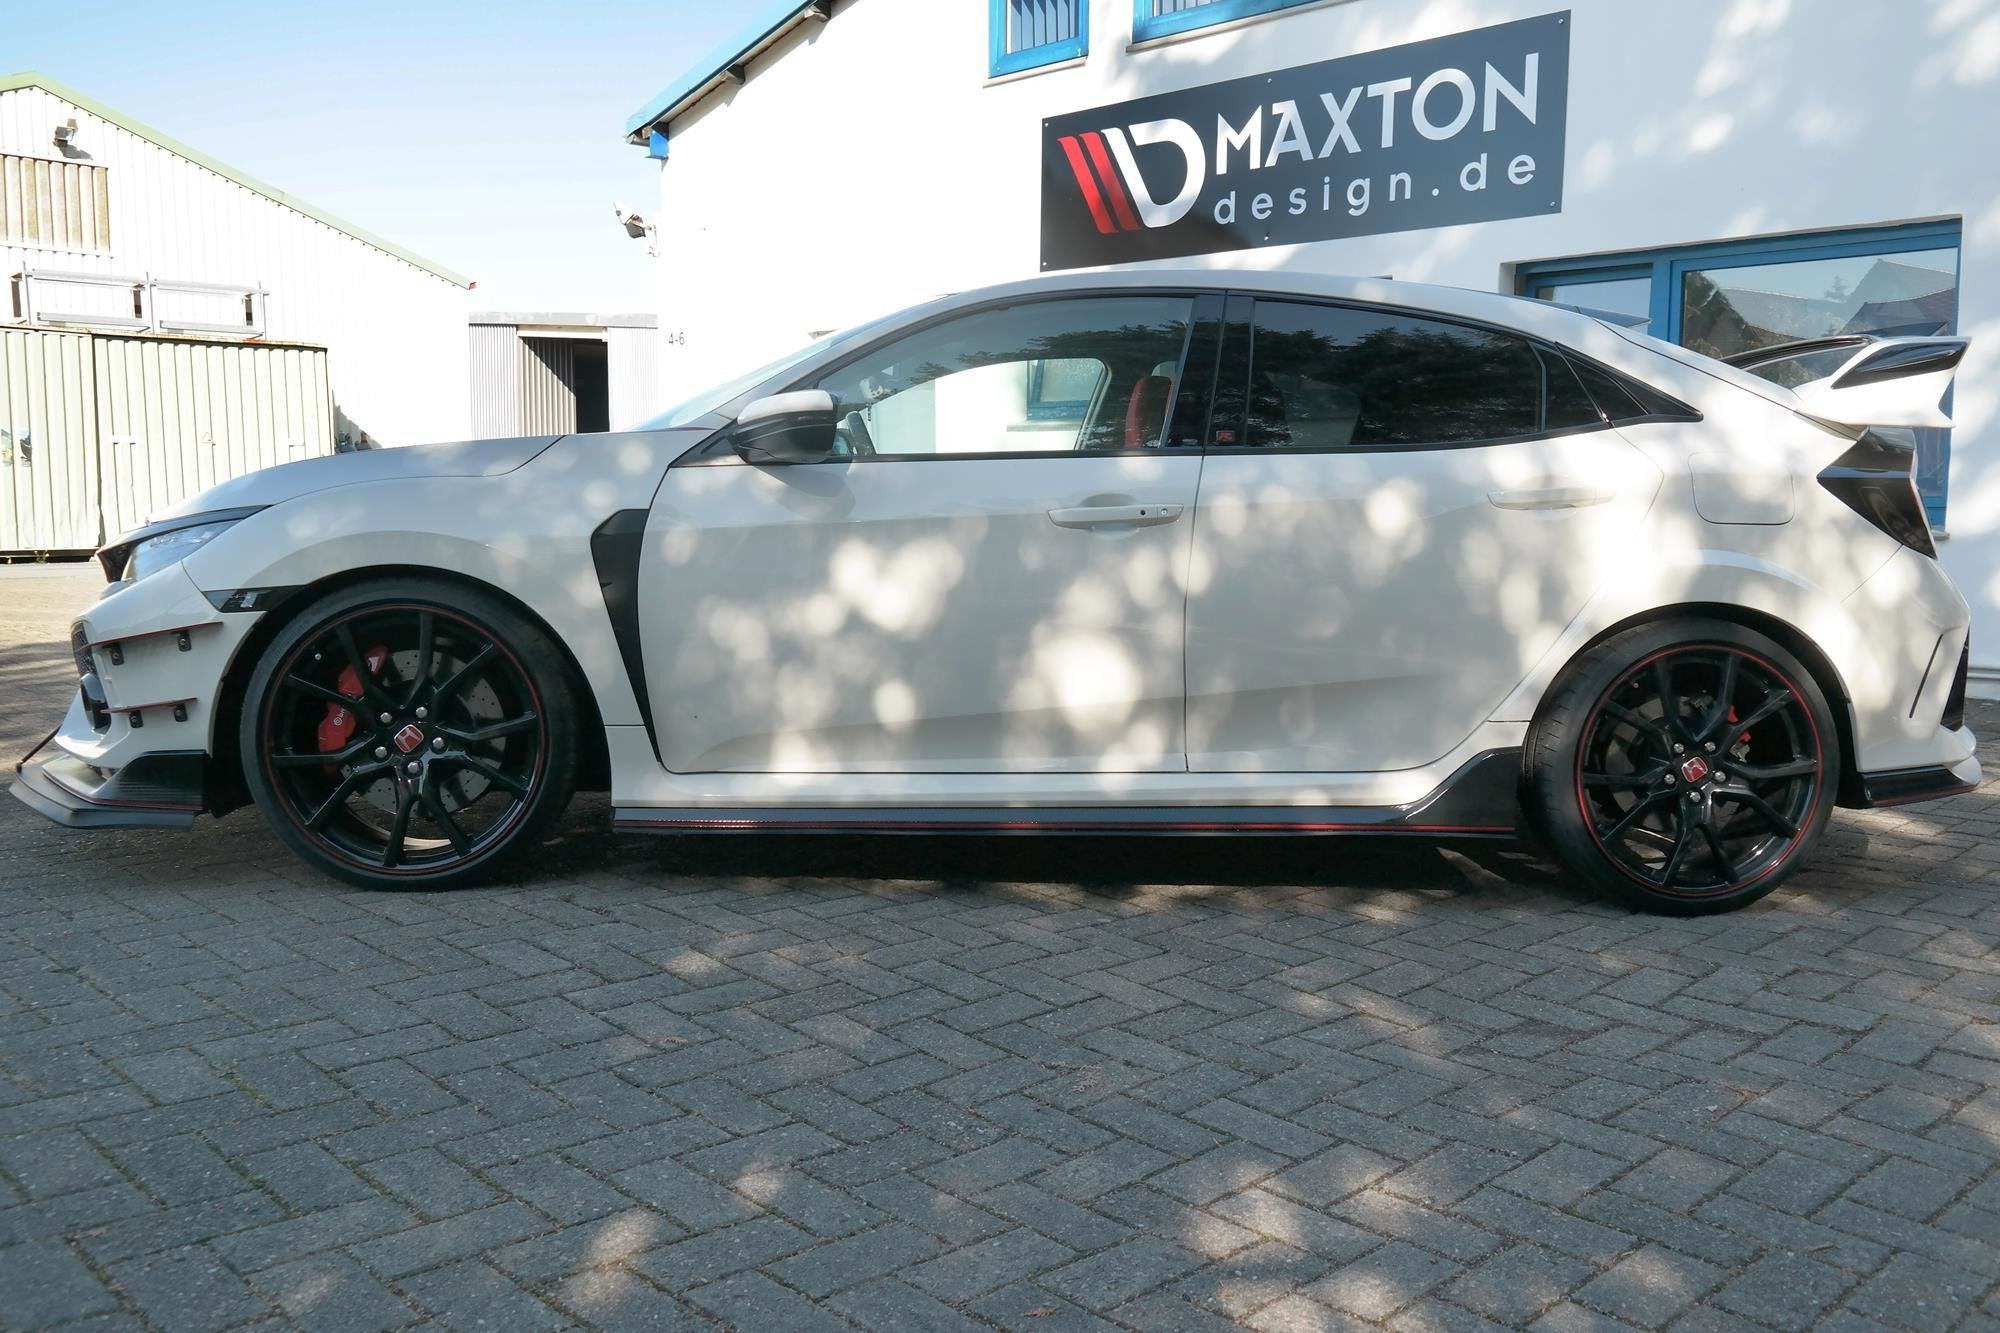 Racing Side Skirts Diffusers Honda Civic X Type R Our Offer Honda Civic Mk10 Type S R Maxton Design